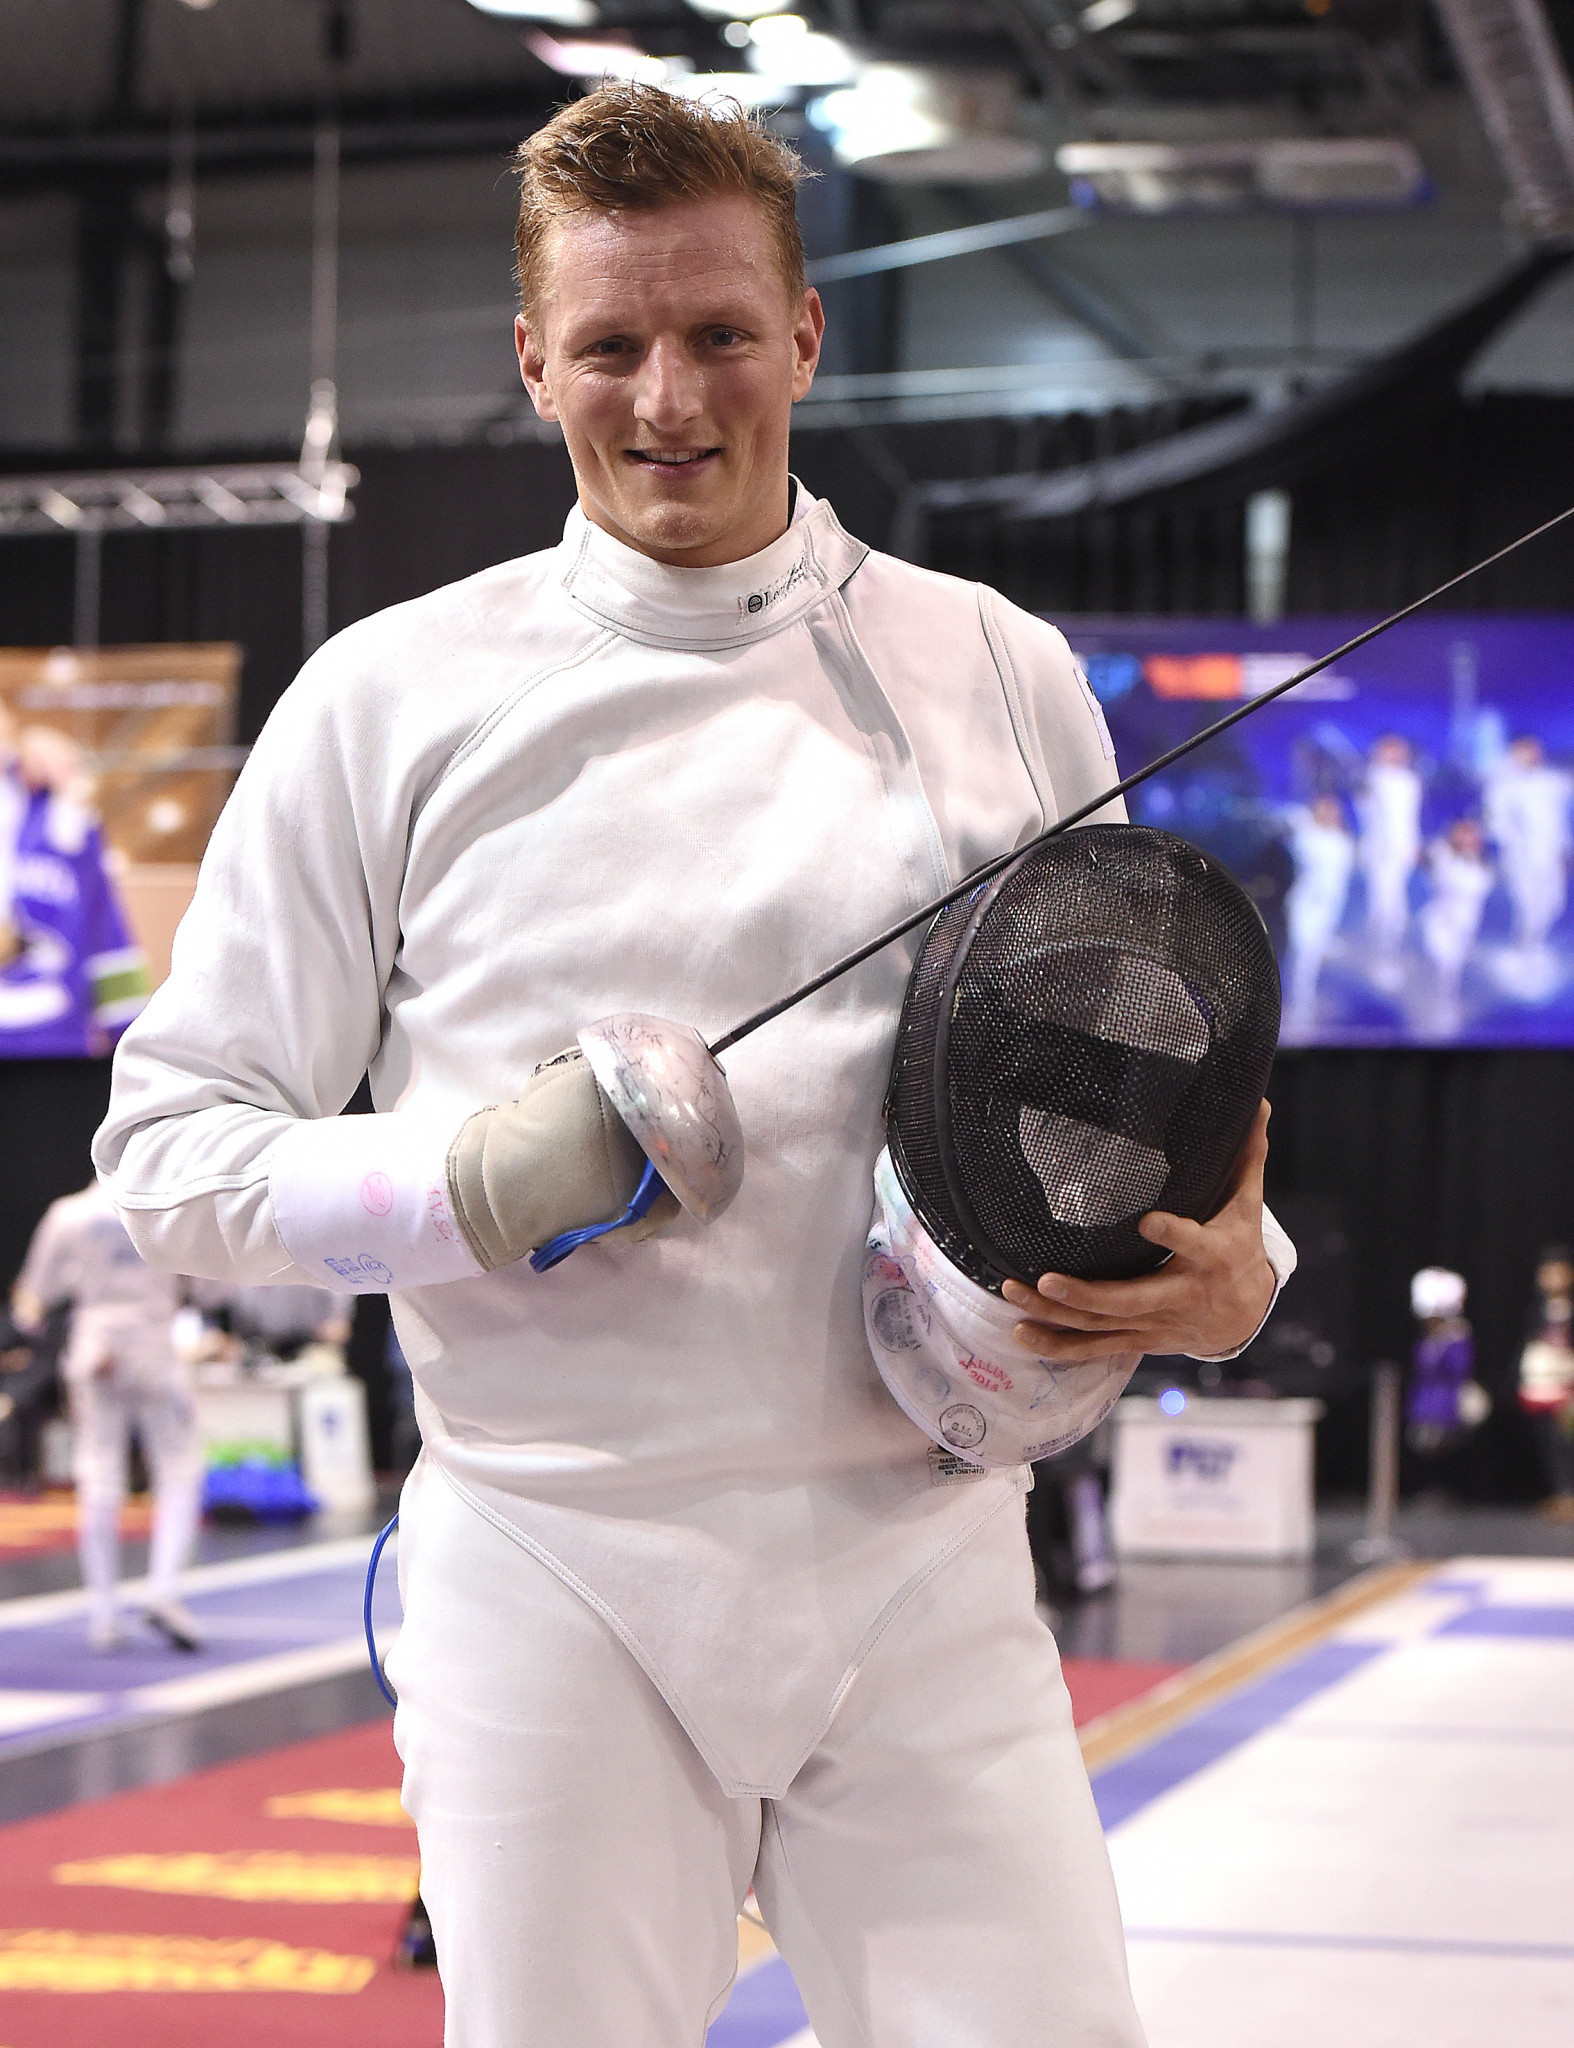 Verwijlen beats world number one in FIE men's Épée World Cup final